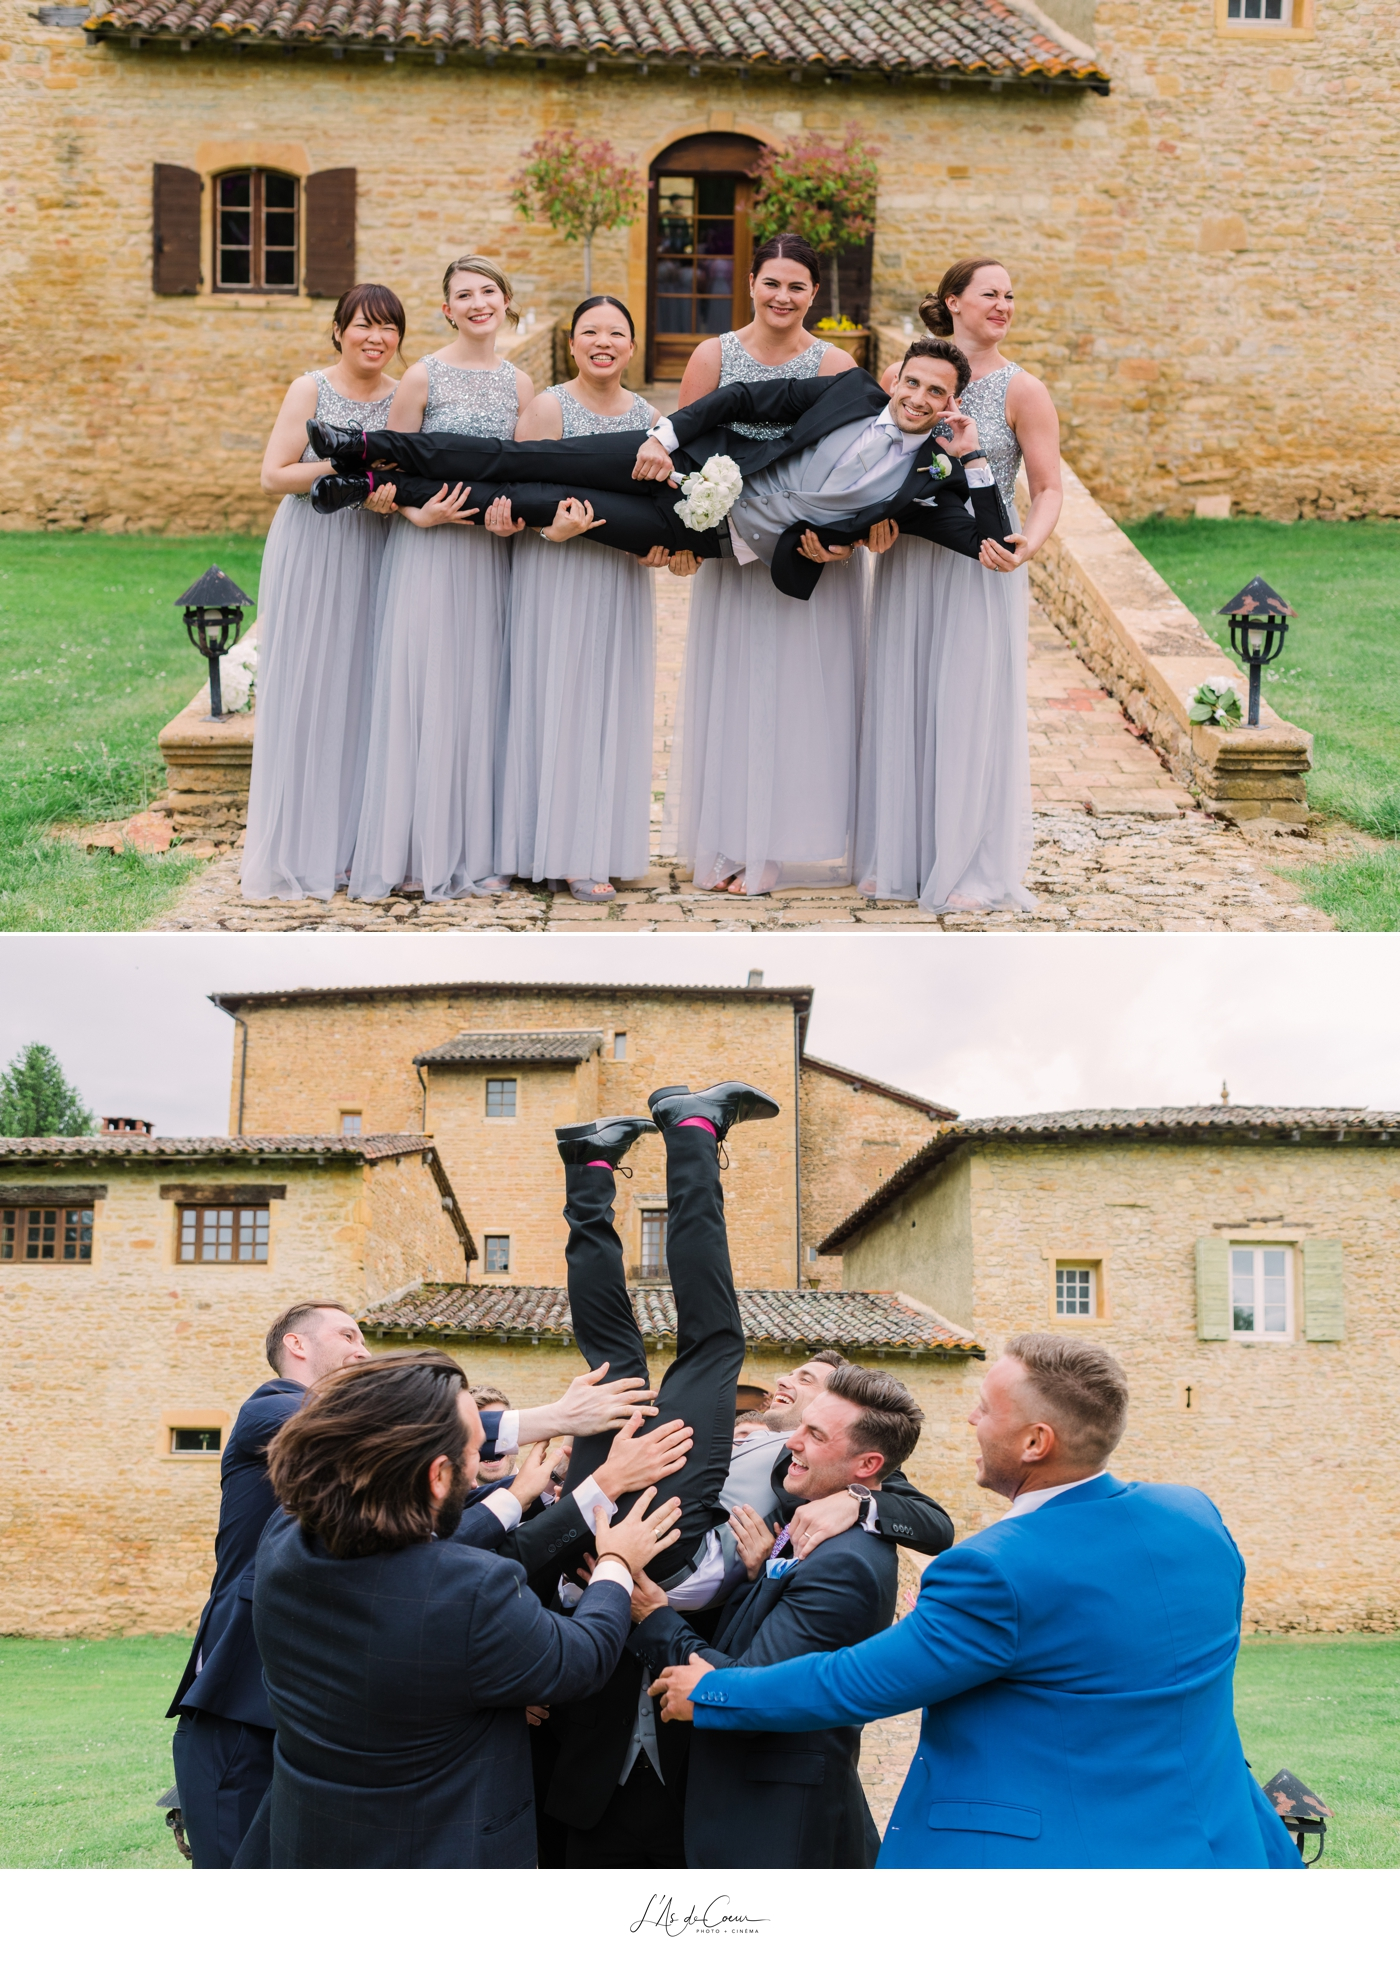 Jumping groom wedding Beaujolais